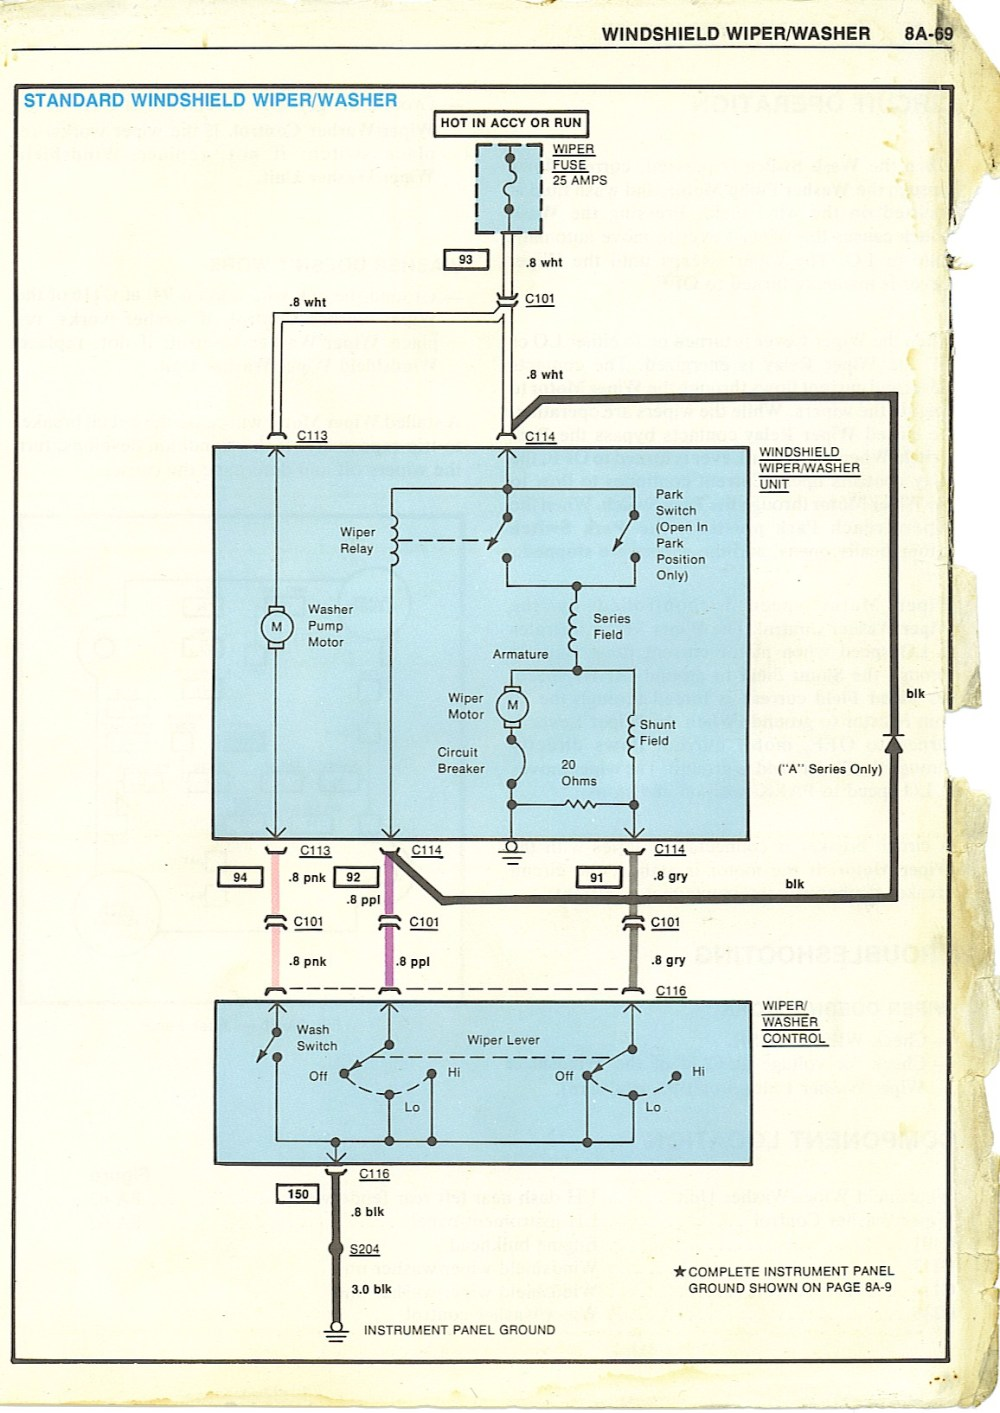 medium resolution of 1971 chevy wiper wiring diagram simple wiring schema 1977 oldsmobile 442 1970 oldsmobile 442 wiring diagram